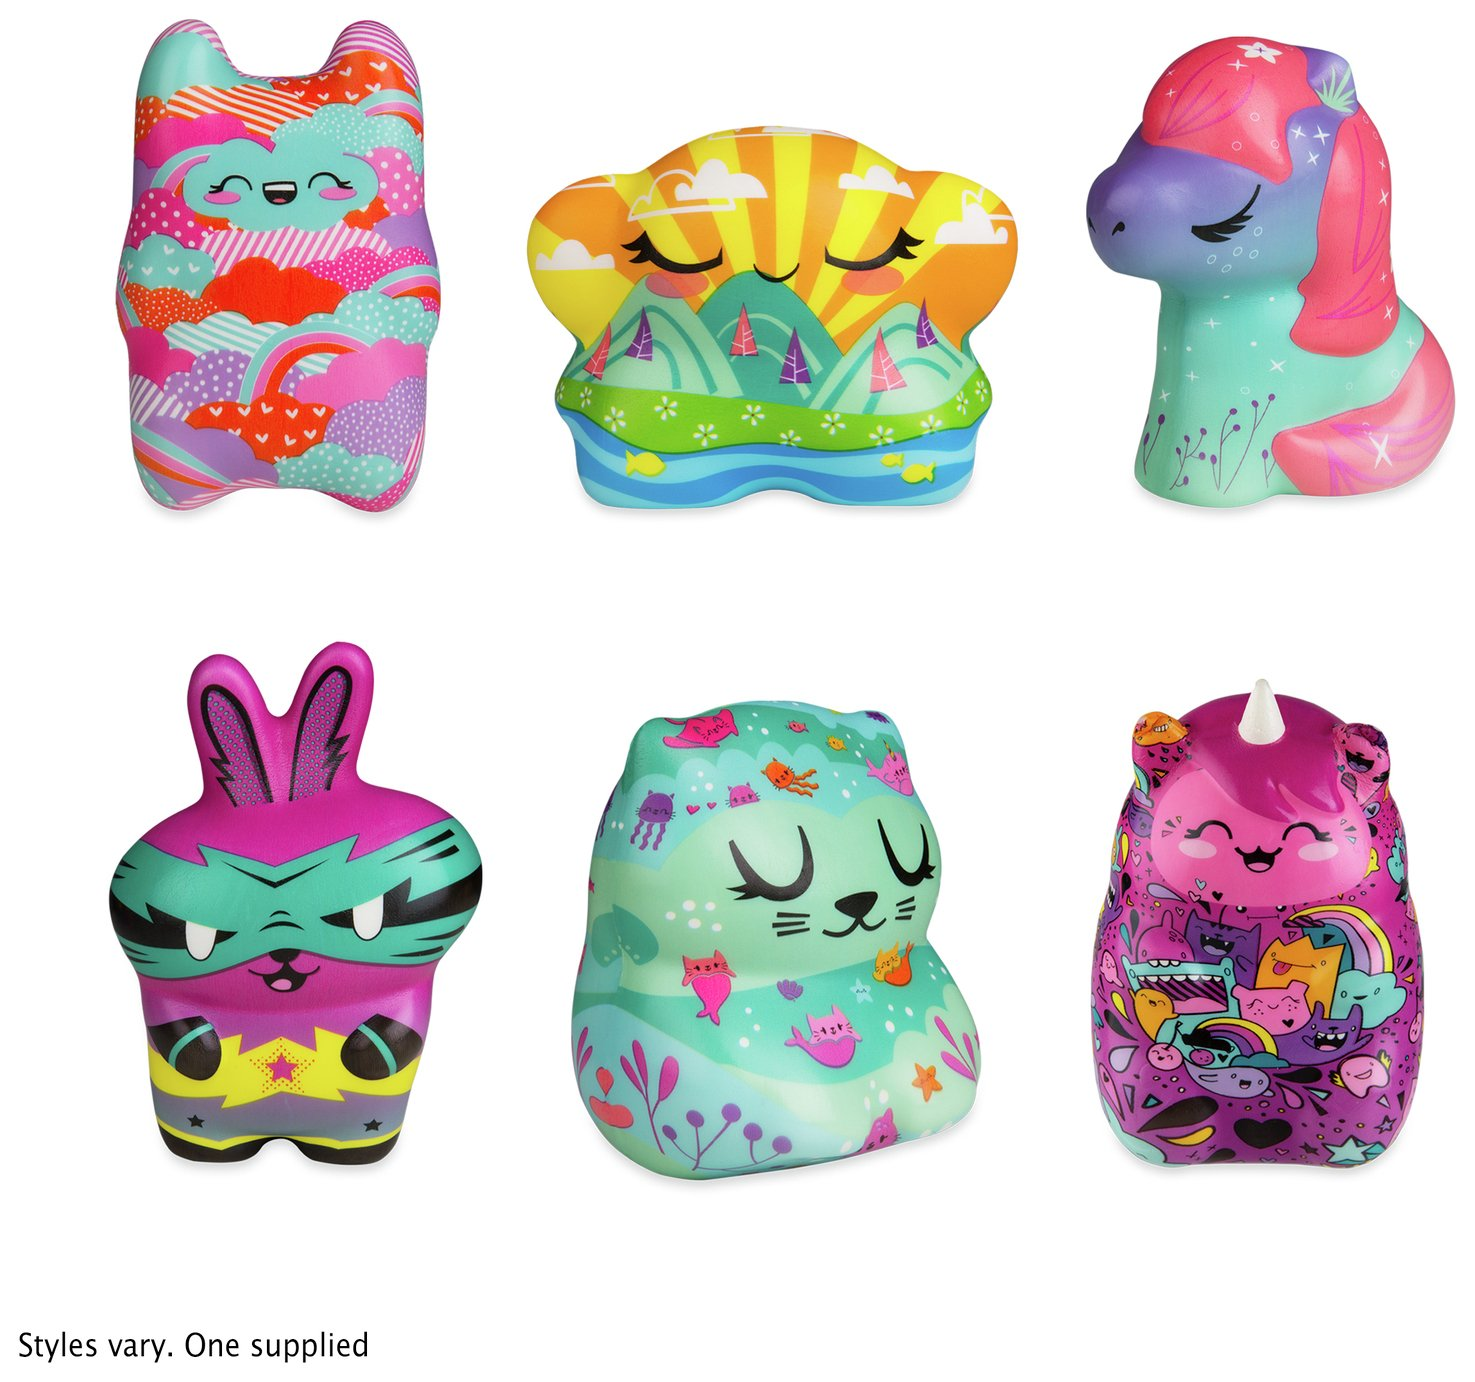 Soft N Slo Squishies Designer Pets review